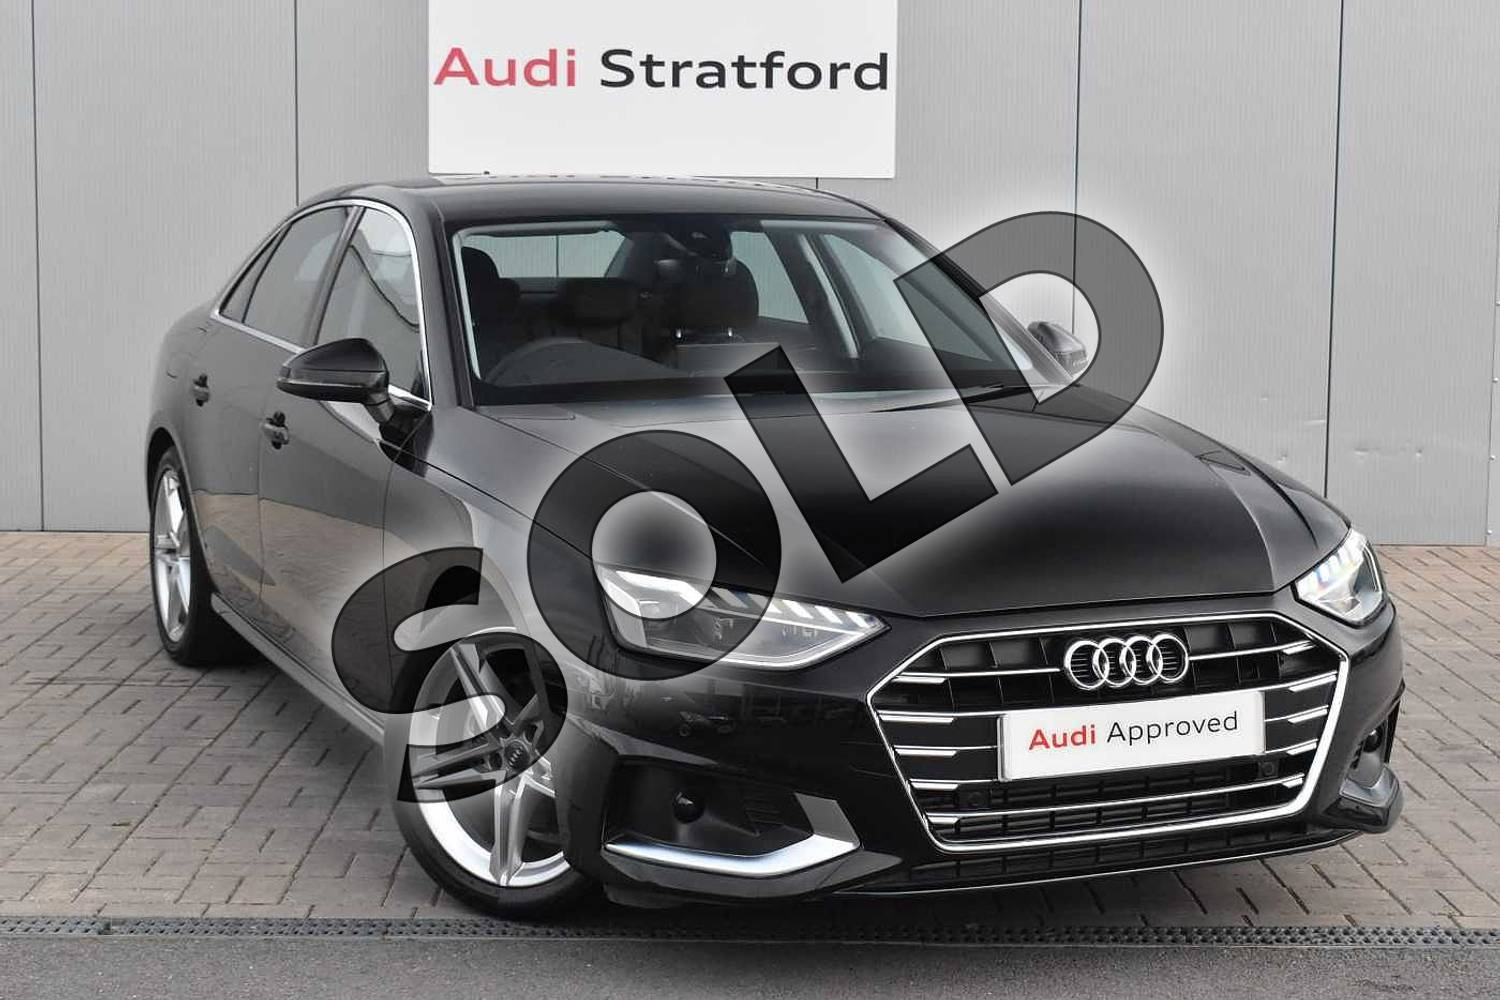 2020 Audi A4 Saloon 35 TFSI Sport 4dr S Tronic in Myth Black Metallic at Stratford Audi